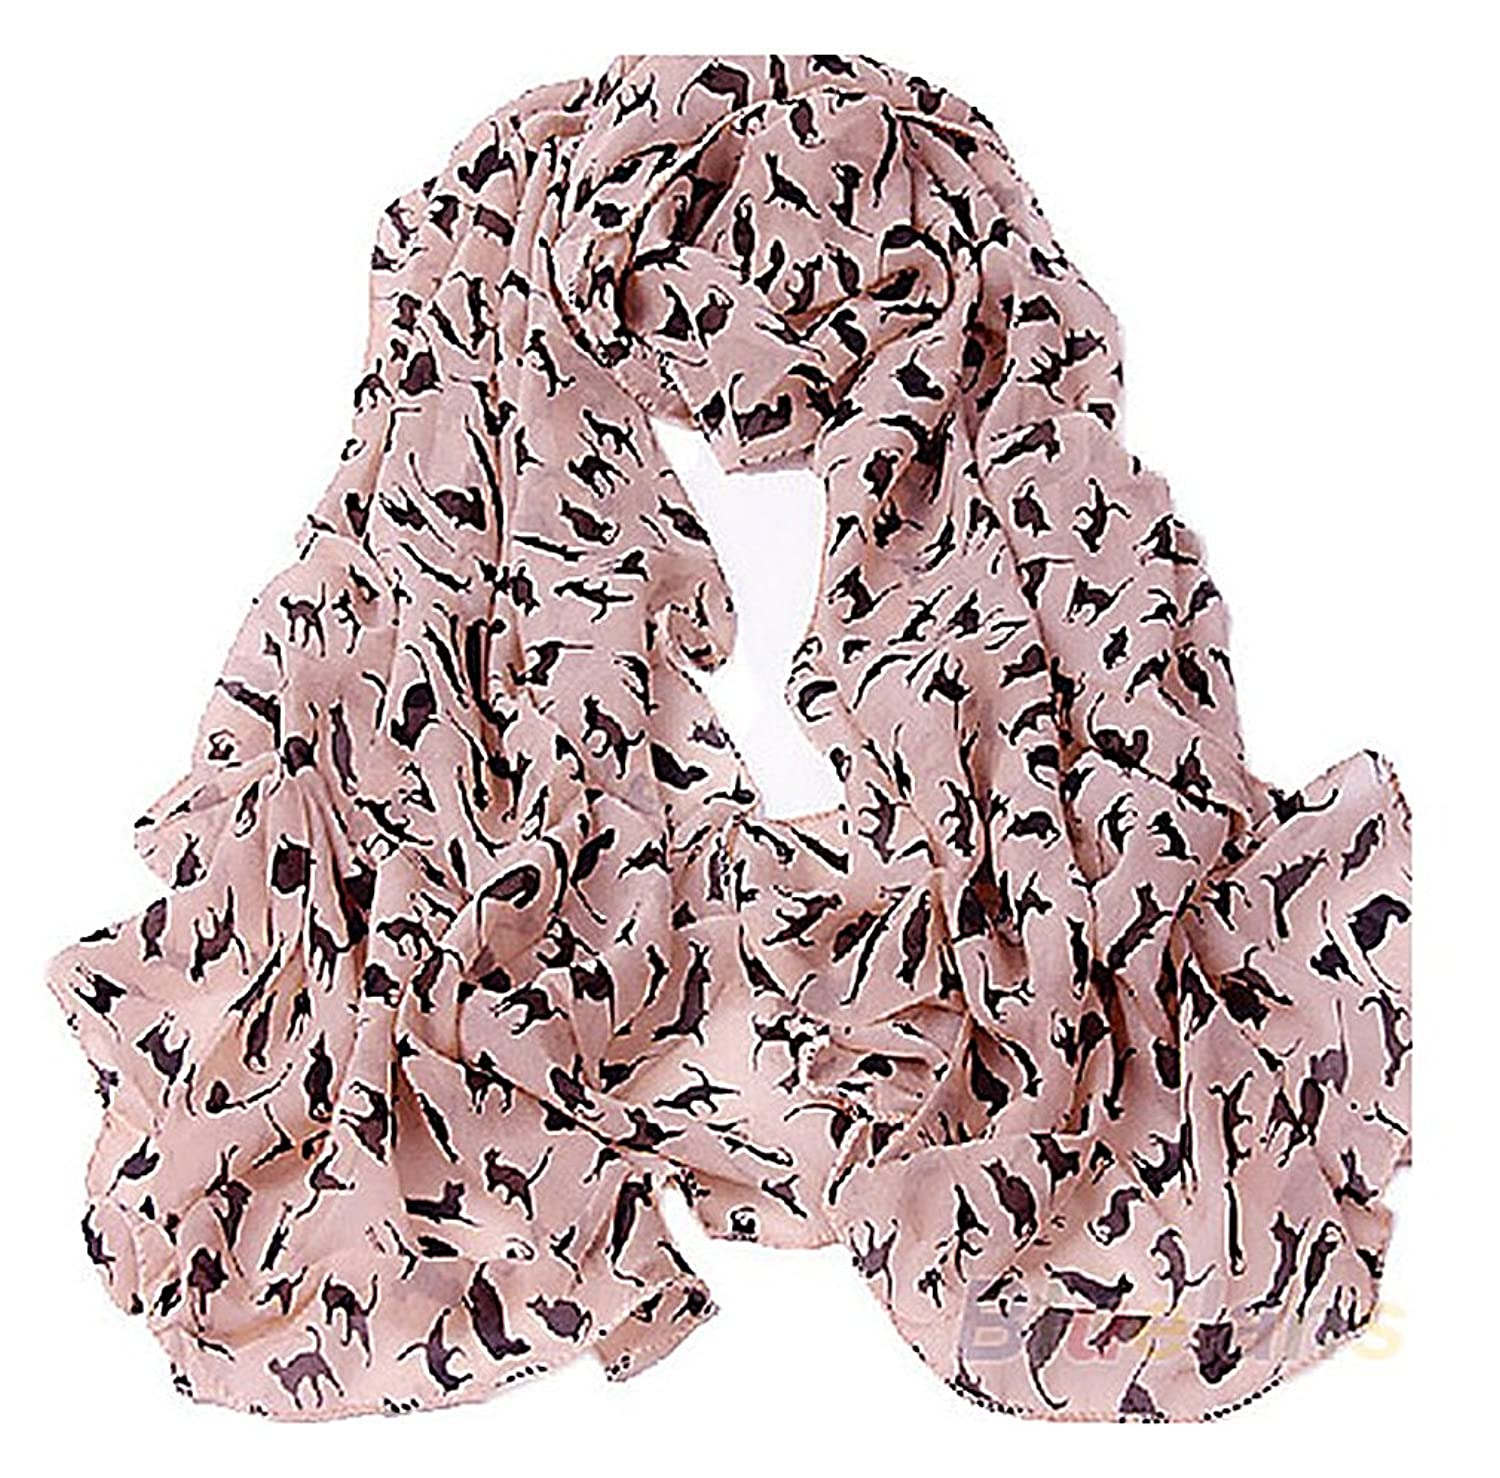 US&R Women's Classic Light Colorful Kitty Printed Scarf Long Wrap